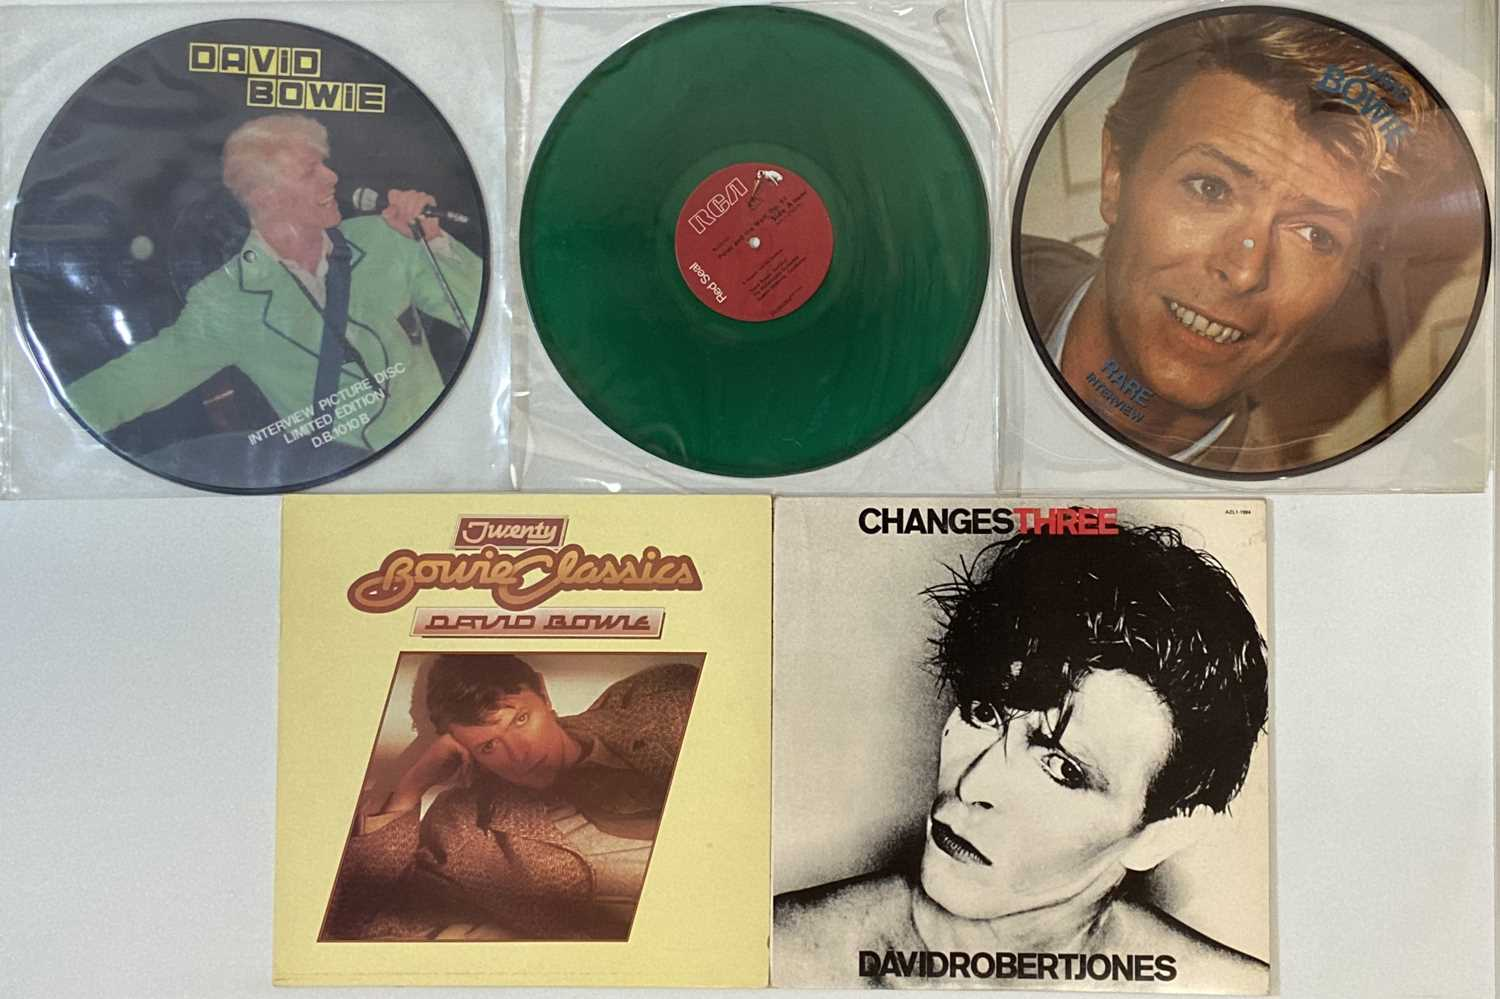 DAVID BOWIE - NORTH AMERICAN/ROW/PICTURE DISCS - LPs - Image 2 of 4